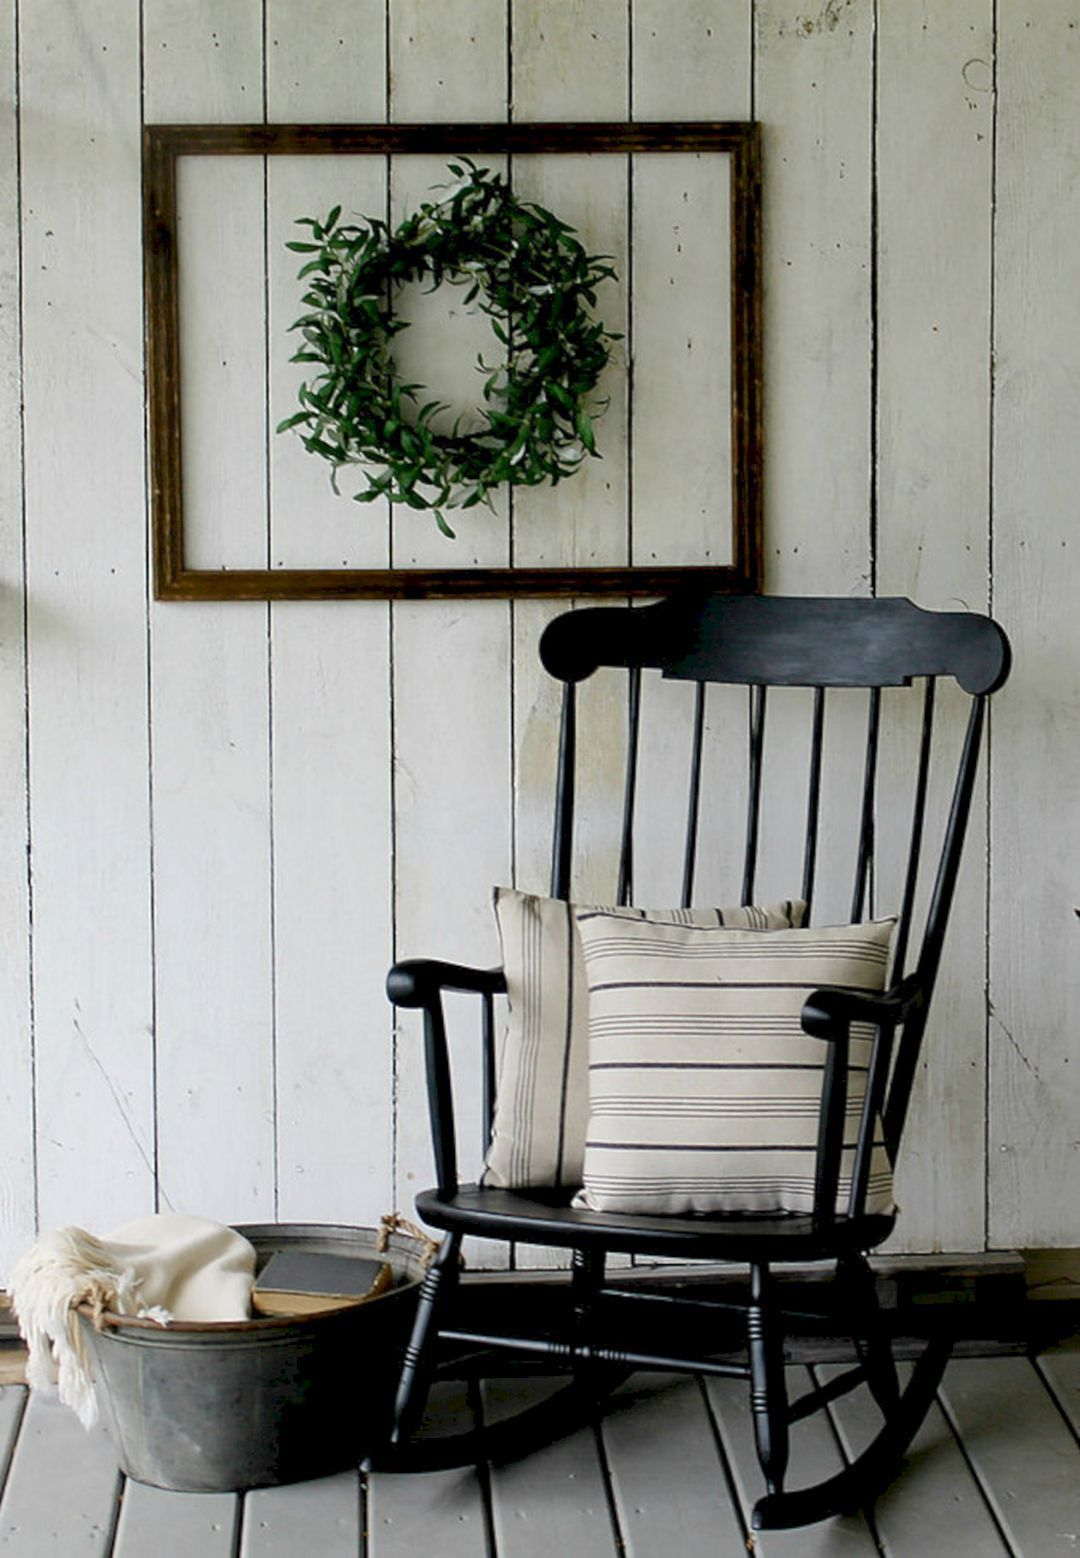 20 Awe-Inspiring Rustic Porch Decor Ideas for an Instant Farmhouse Vibe! #rusticporchideas